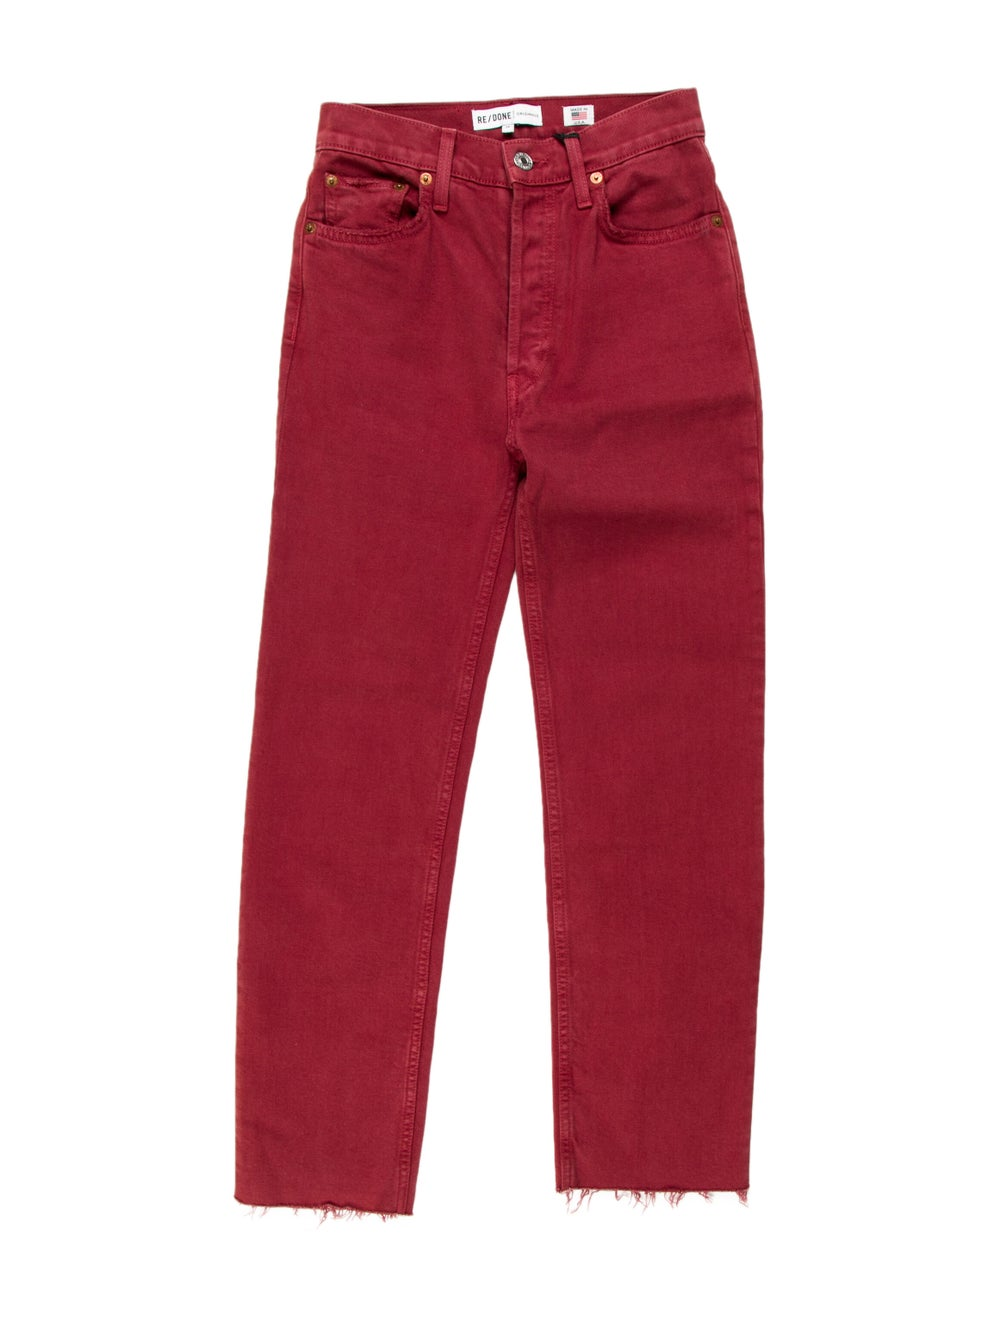 Re/done Mid-Rise Straight Leg Jeans - image 1